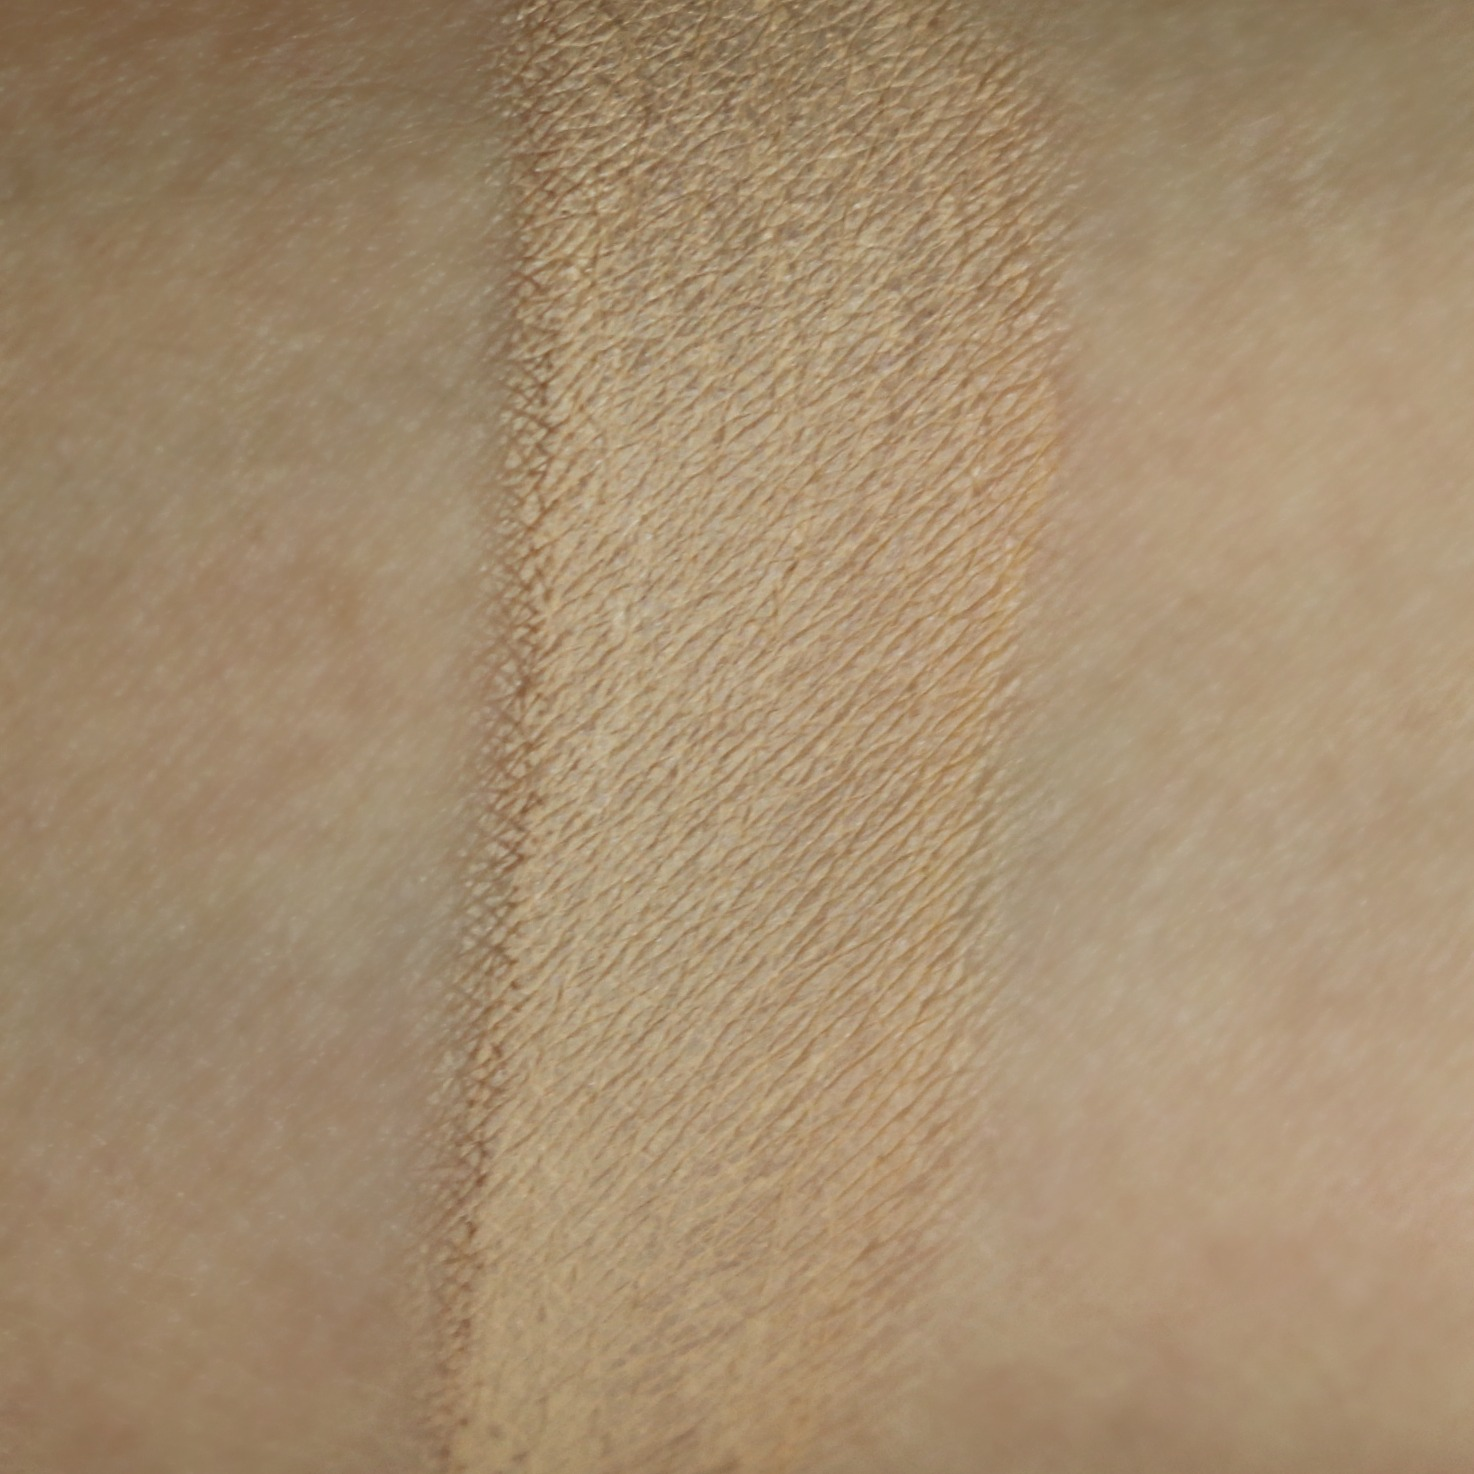 Make Up For Ever Matte Velvet Skin Foundation Y235 Swatch Review